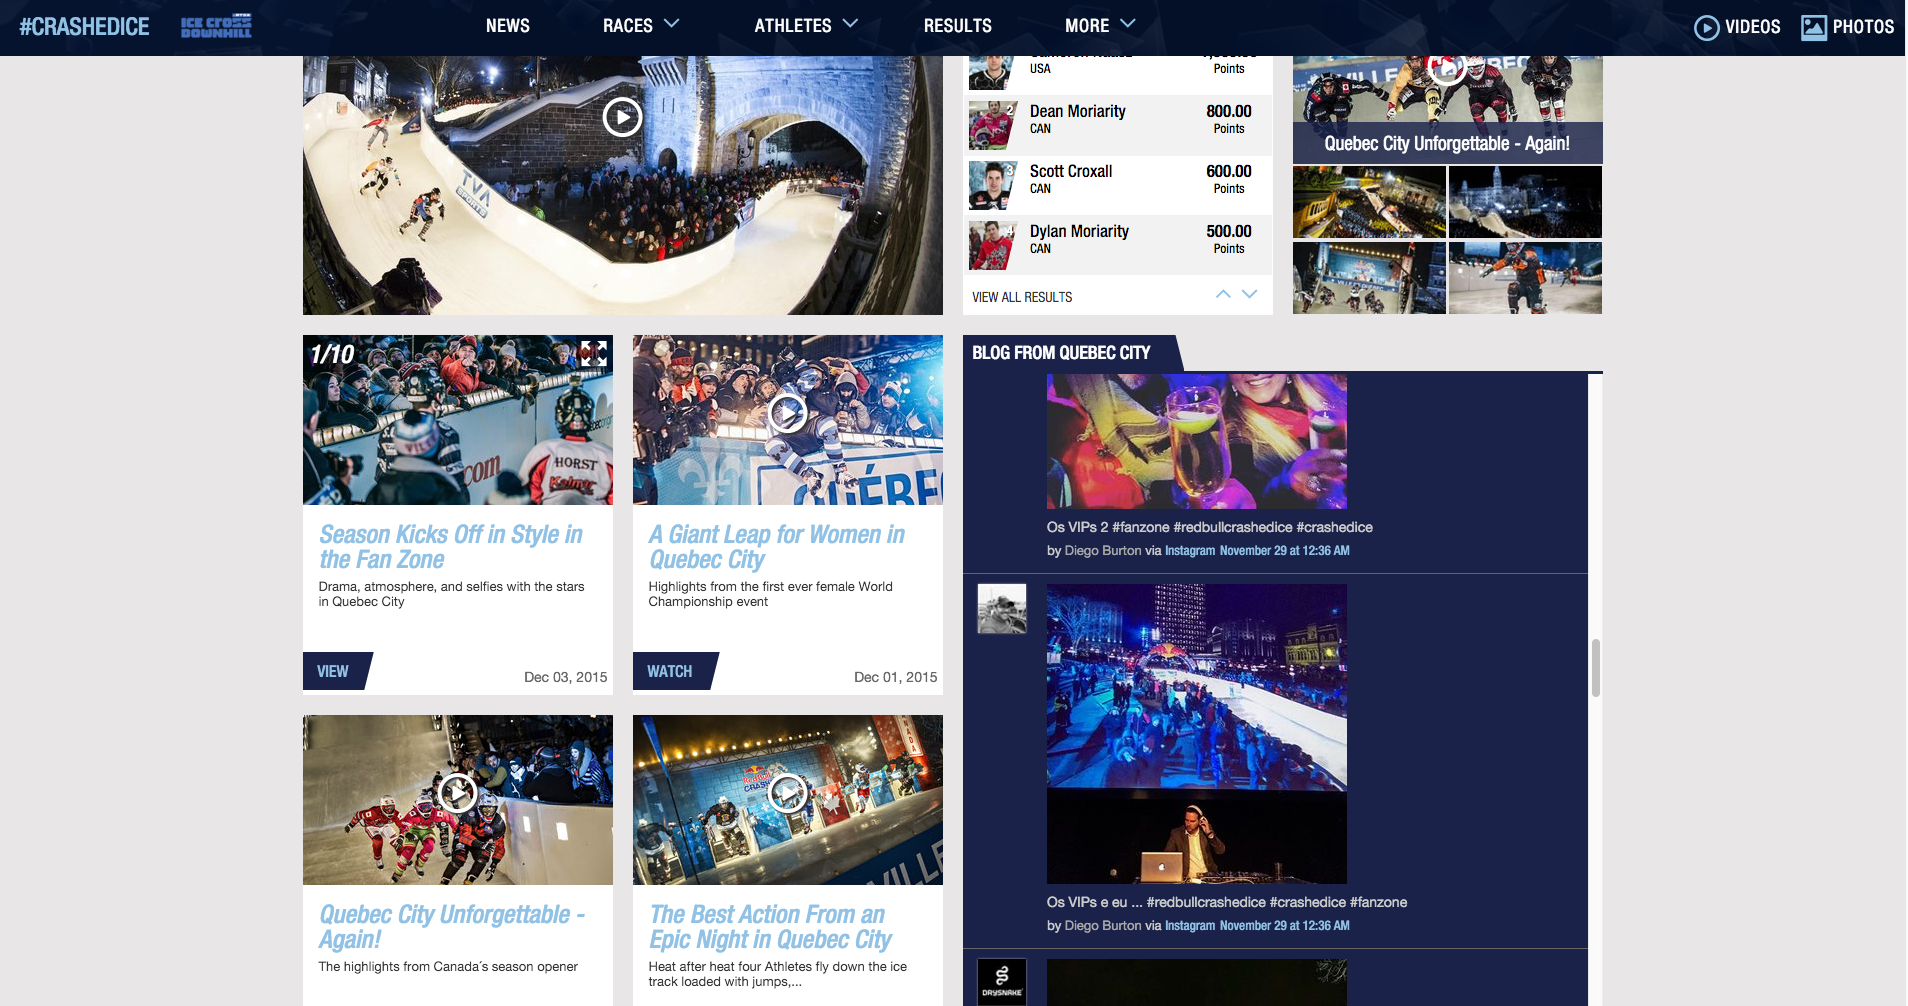 The Event's Live Blog, shown in-situ on the relevant event page once the event is complete